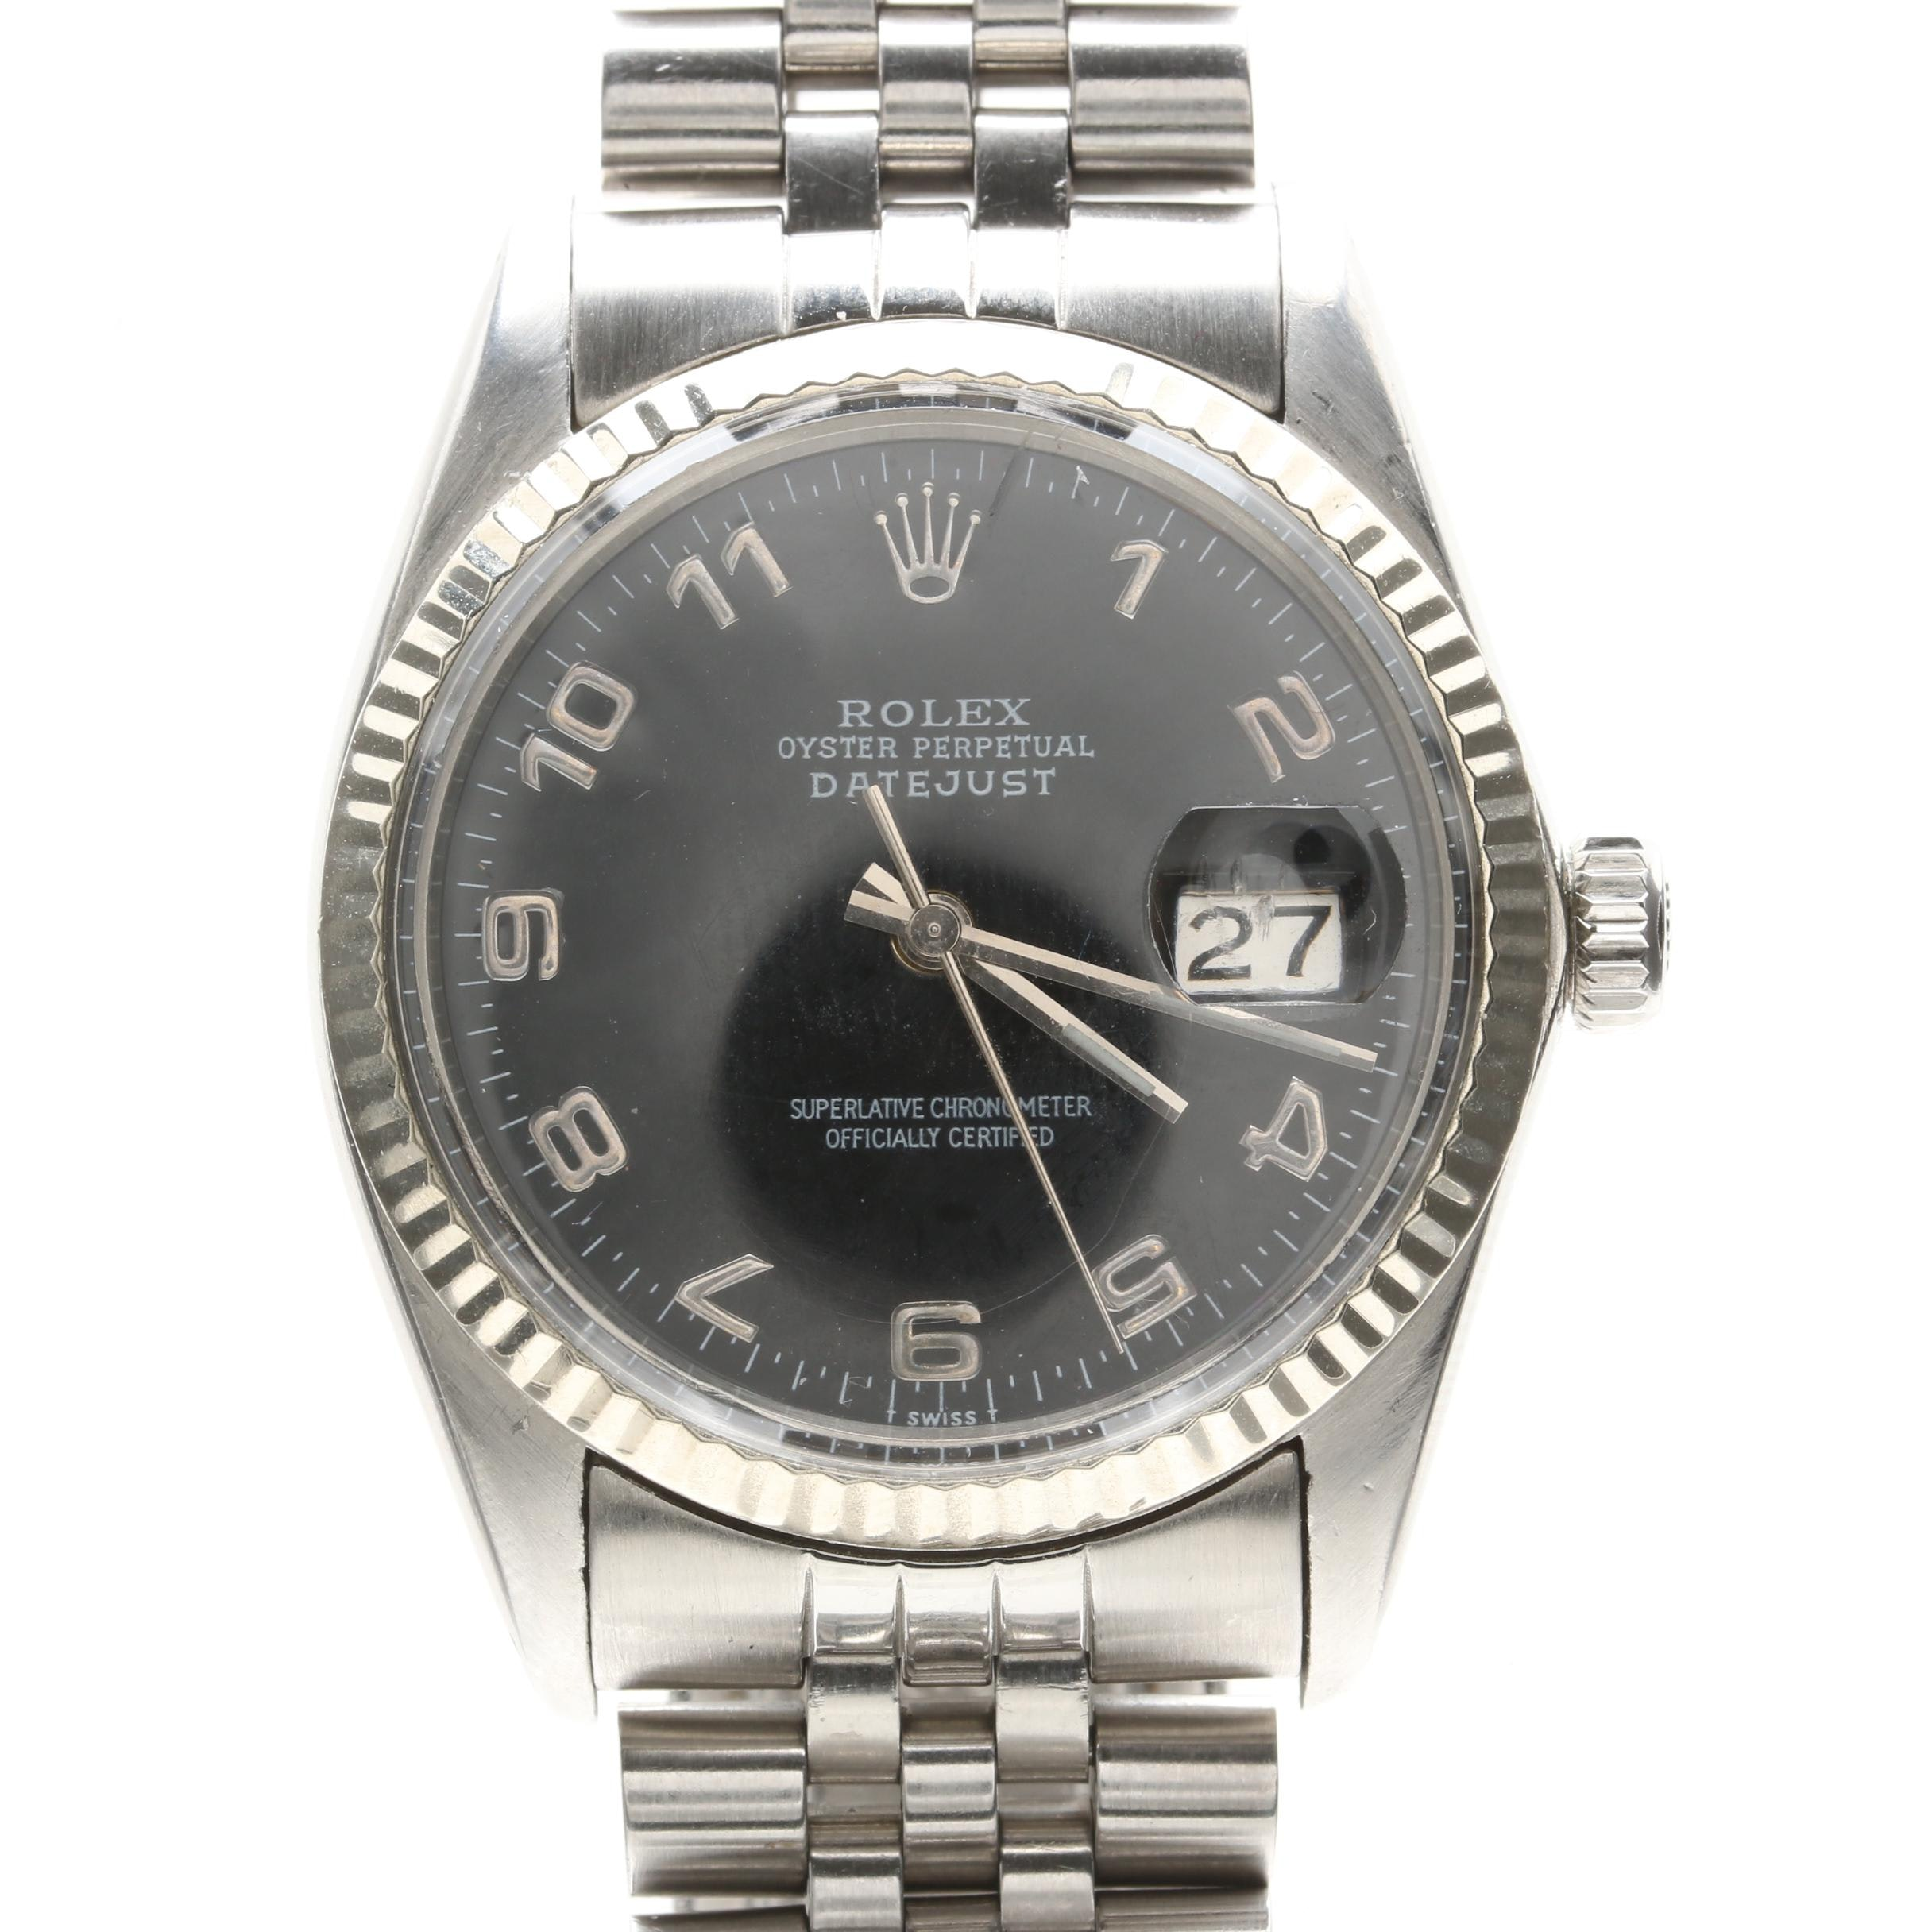 Rolex Oyster Perpetual Datejust Stainless Steel and 18K White Gold Wristwatch